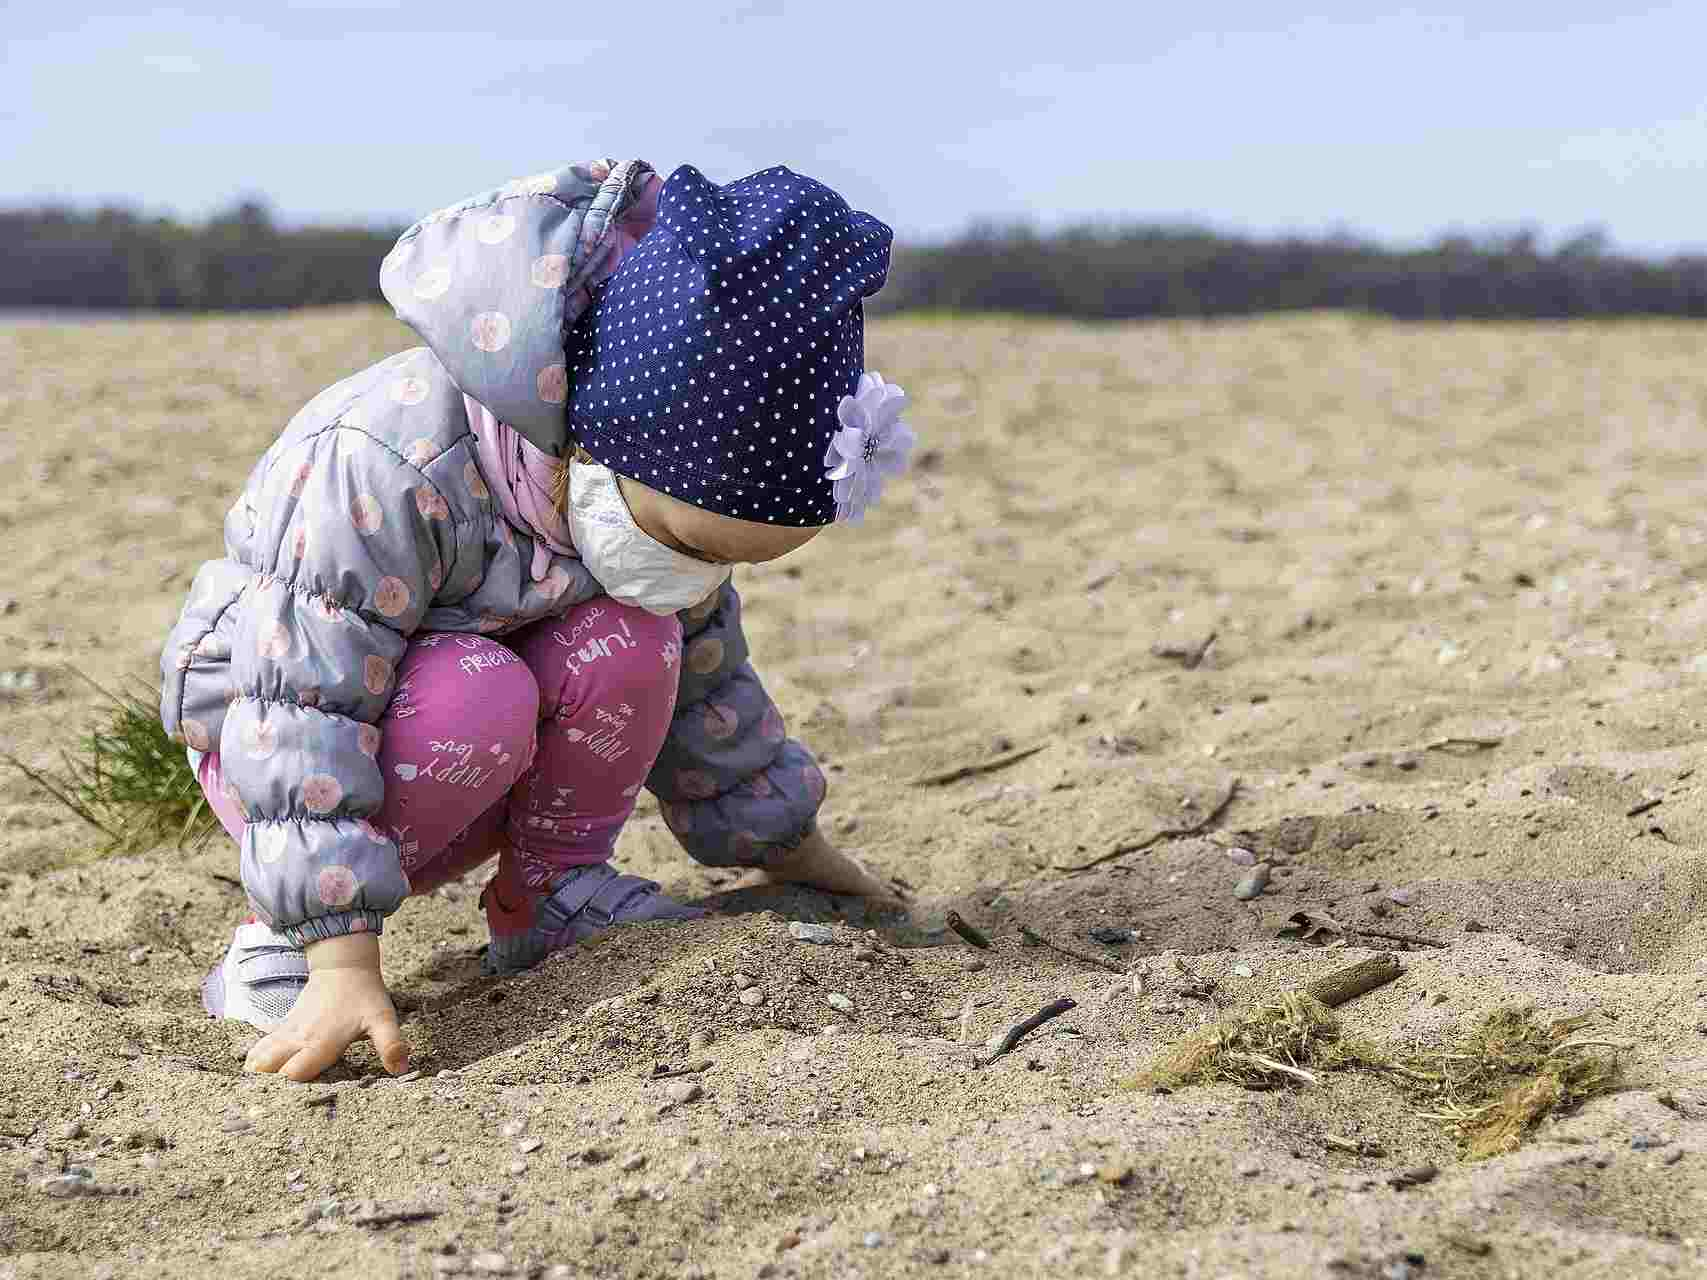 Toddler bends over the sand while wearing a hat and face covering